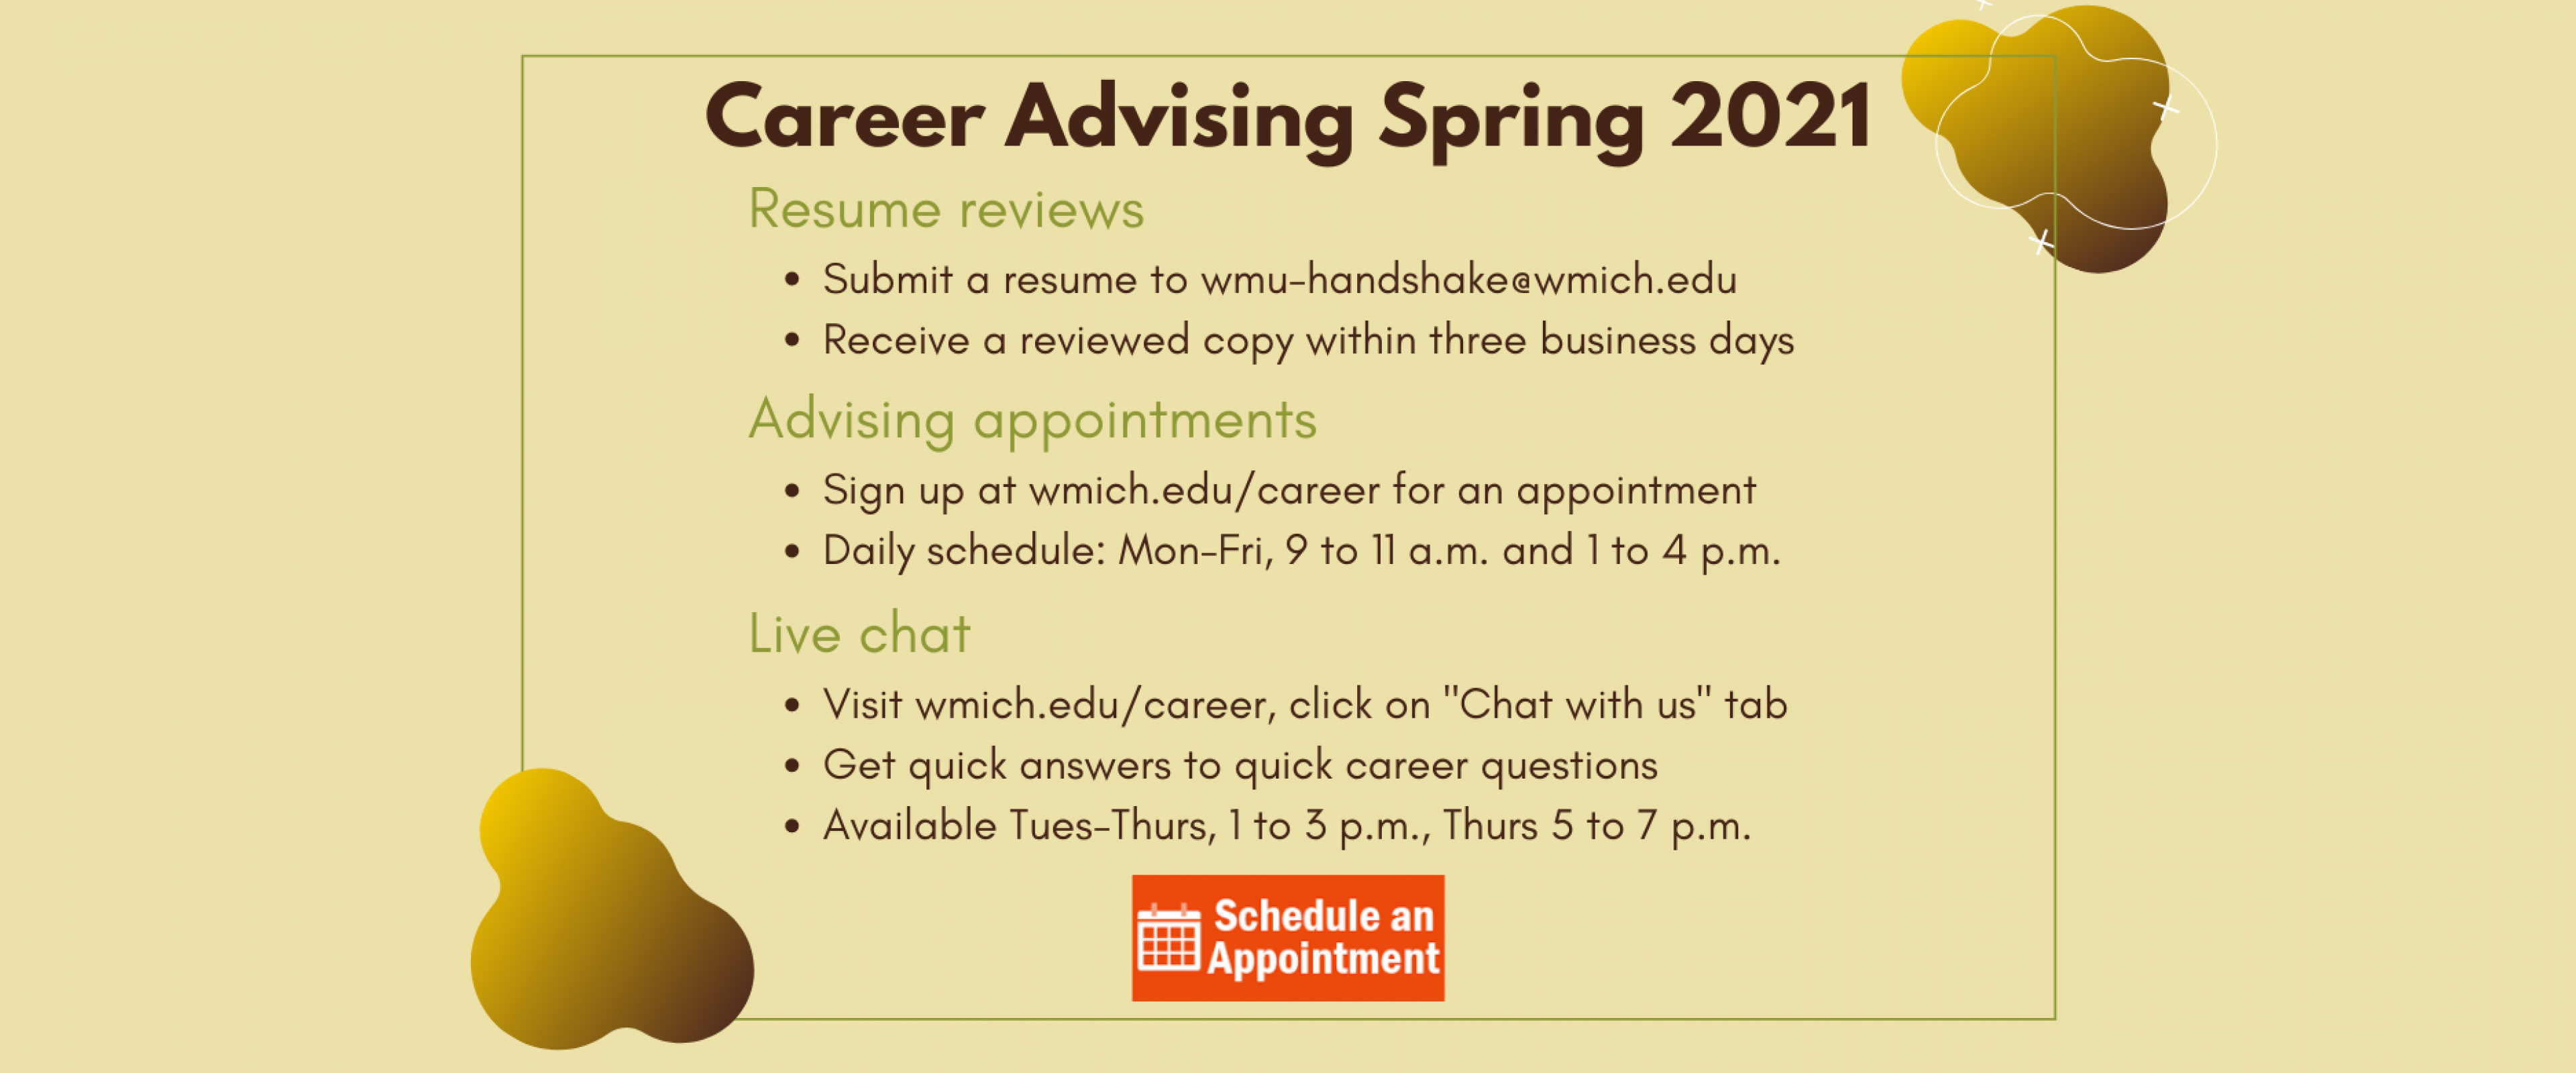 """Career Advising Spring 2021. Resume reviews: submit a resume to wmu-handshake@wmich.edu and receive a reviewed copy within three business days. Advising appointments: Sign up on wmich.edu/career for a career advising appointment with a Career Development Specialist. Daily schedule: Monday through Friday, 9 to 11 a.m. and 1 to 4 p.m. Click this slide to make an appointment. Live chat - click on """"Chat with us"""" tab. Quick answers to quick career questions. Tues-Thurs 1 to 3 p.m., Thurs 5 to 7 p.m."""